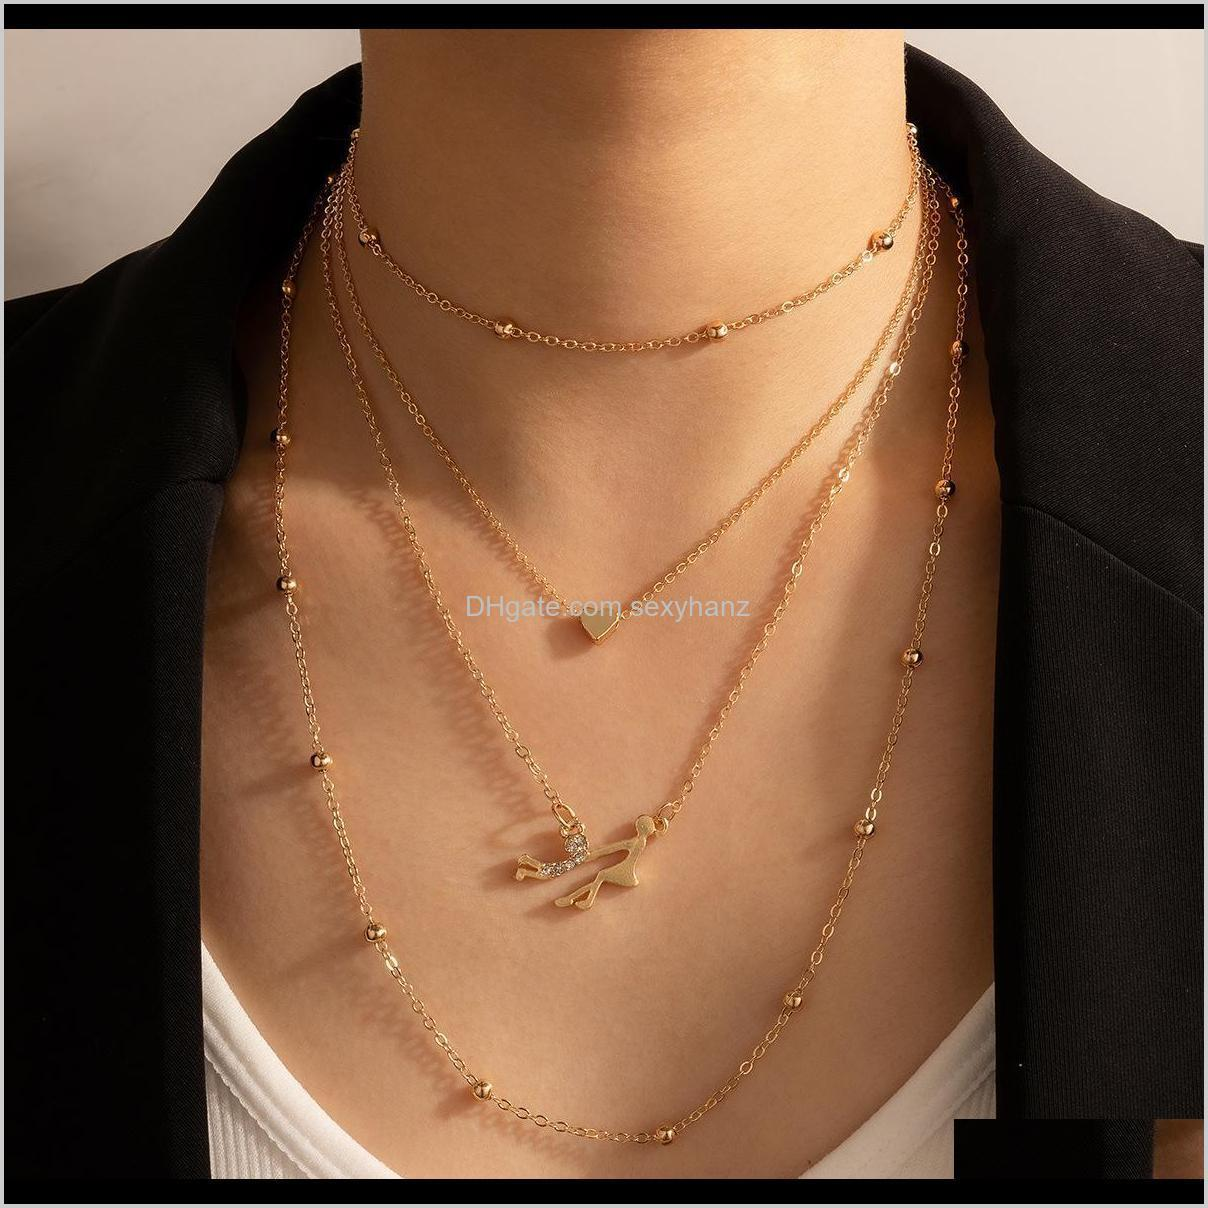 Necklaces & Pendants Drop Delivery 2021 Mothers Day Baby Girl In Hand Mother Pendant Gold Heart Chokers Necklace Fashion Jewelry Gift Zbrjm